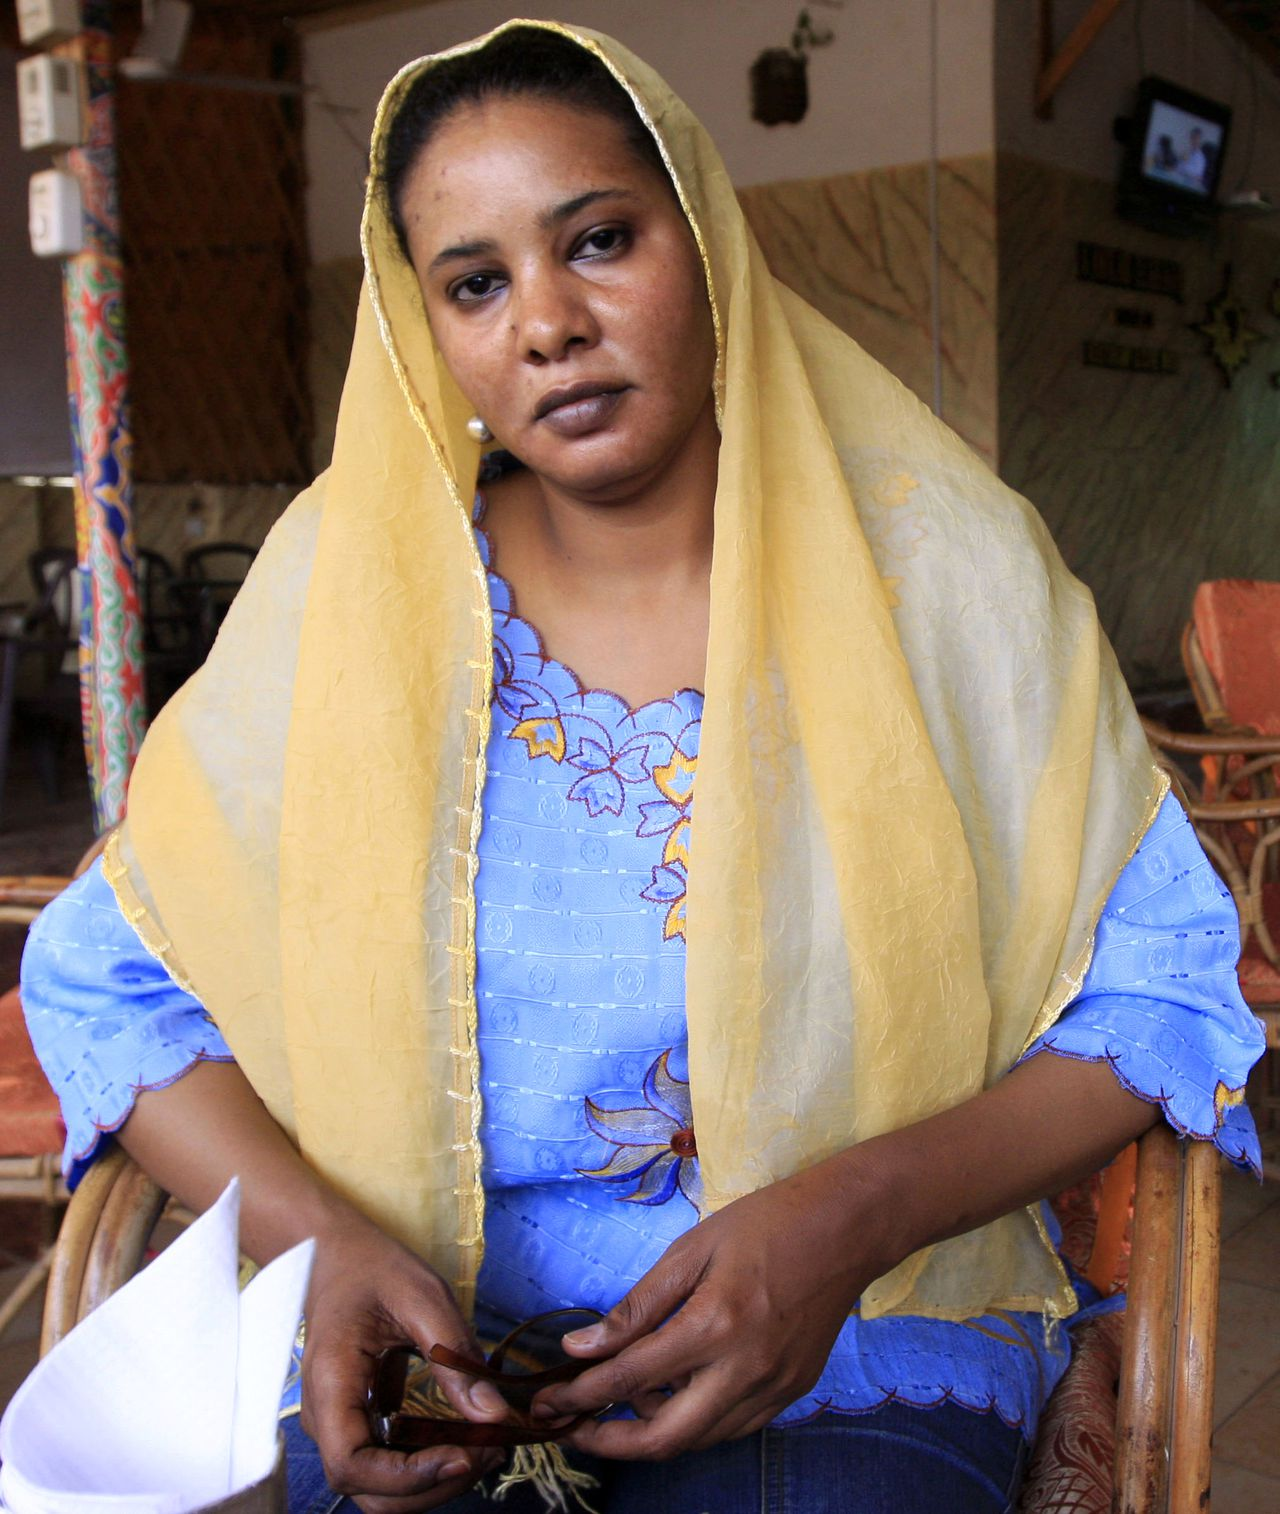 Former journalist Lubna Hussein poses for a photograph at the cafe where she was arrested in Khartoum, July 31, 2009. Hussein, facing 40 lashes for wearing trousers in public, made her first appearance in a court packed with supporters on Wednesday, in what her lawyer described as a test case in Sudan's decency laws. REUTERS/Mohamed Nureldin Abdallh (SUDAN CRIME LAW SOCIETY)